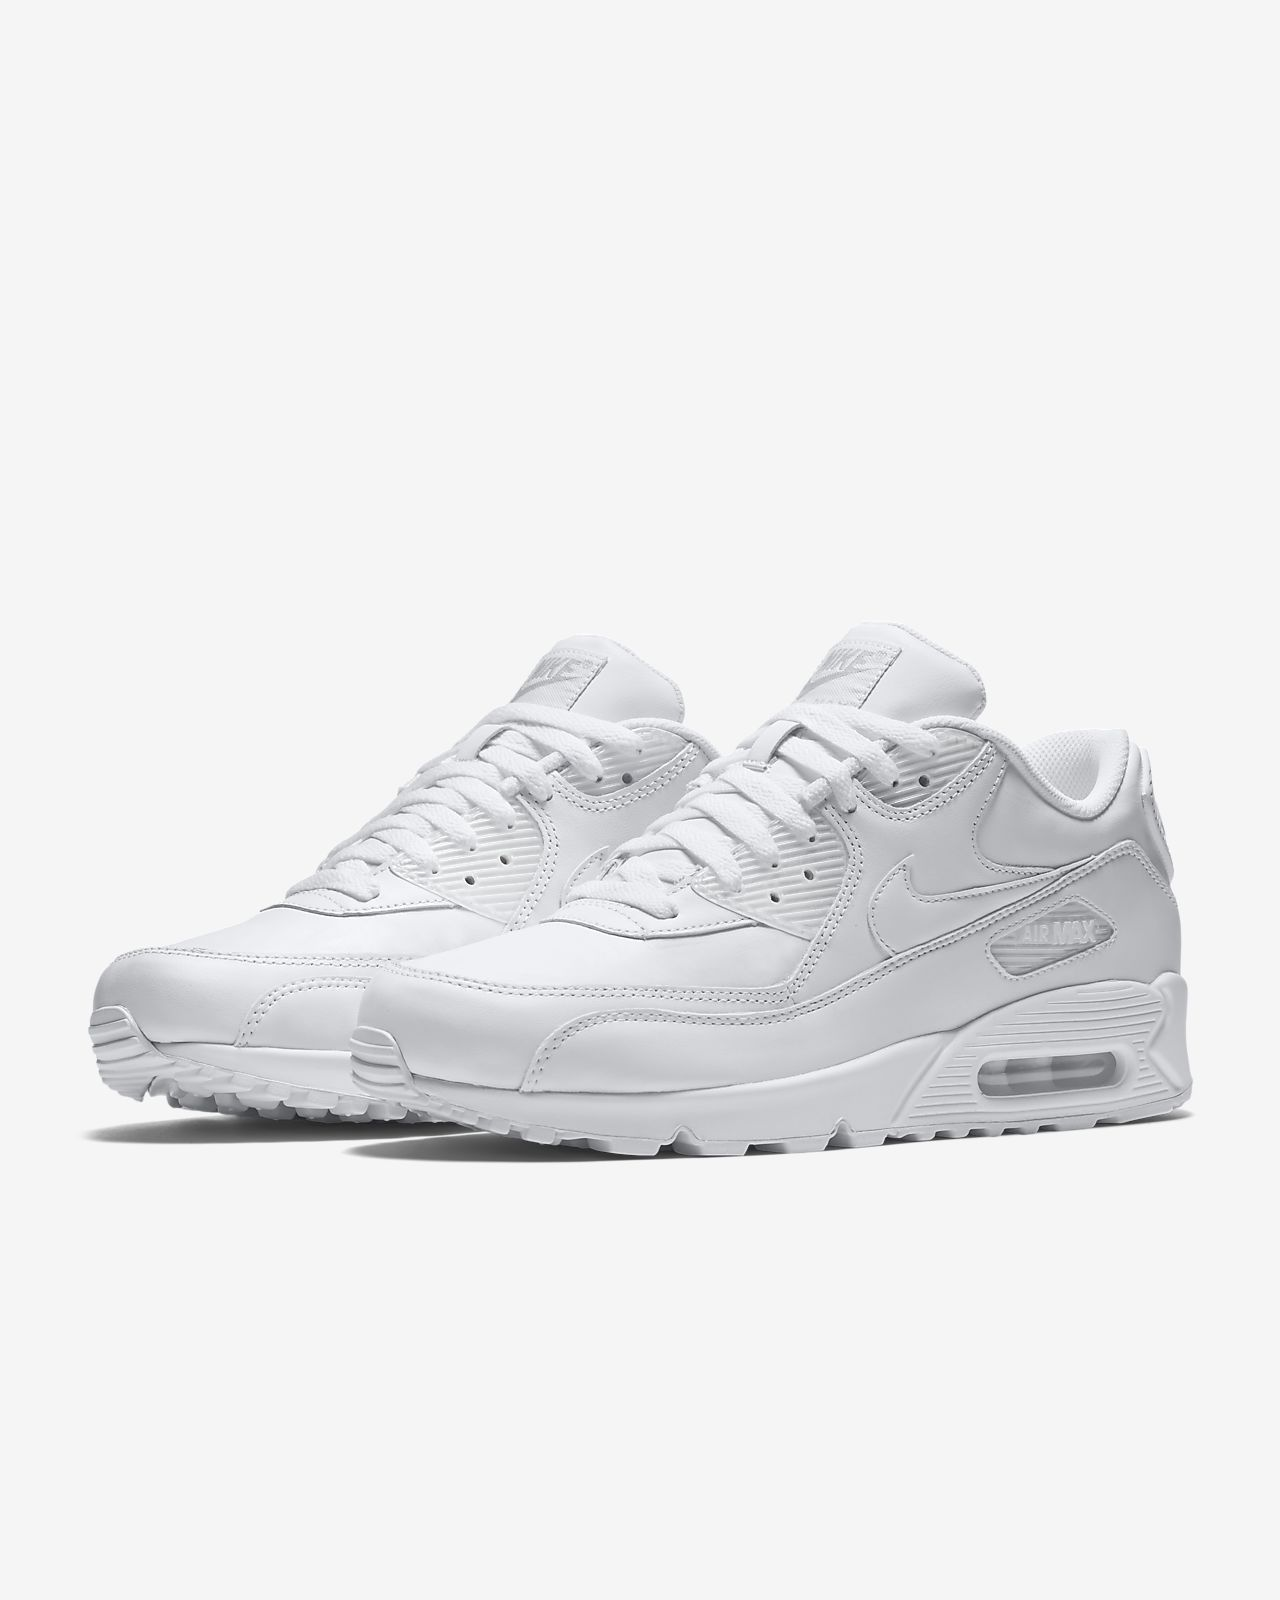 the latest fe0d9 2cb5d ... Chaussure Nike Air Max 90 Leather pour Homme